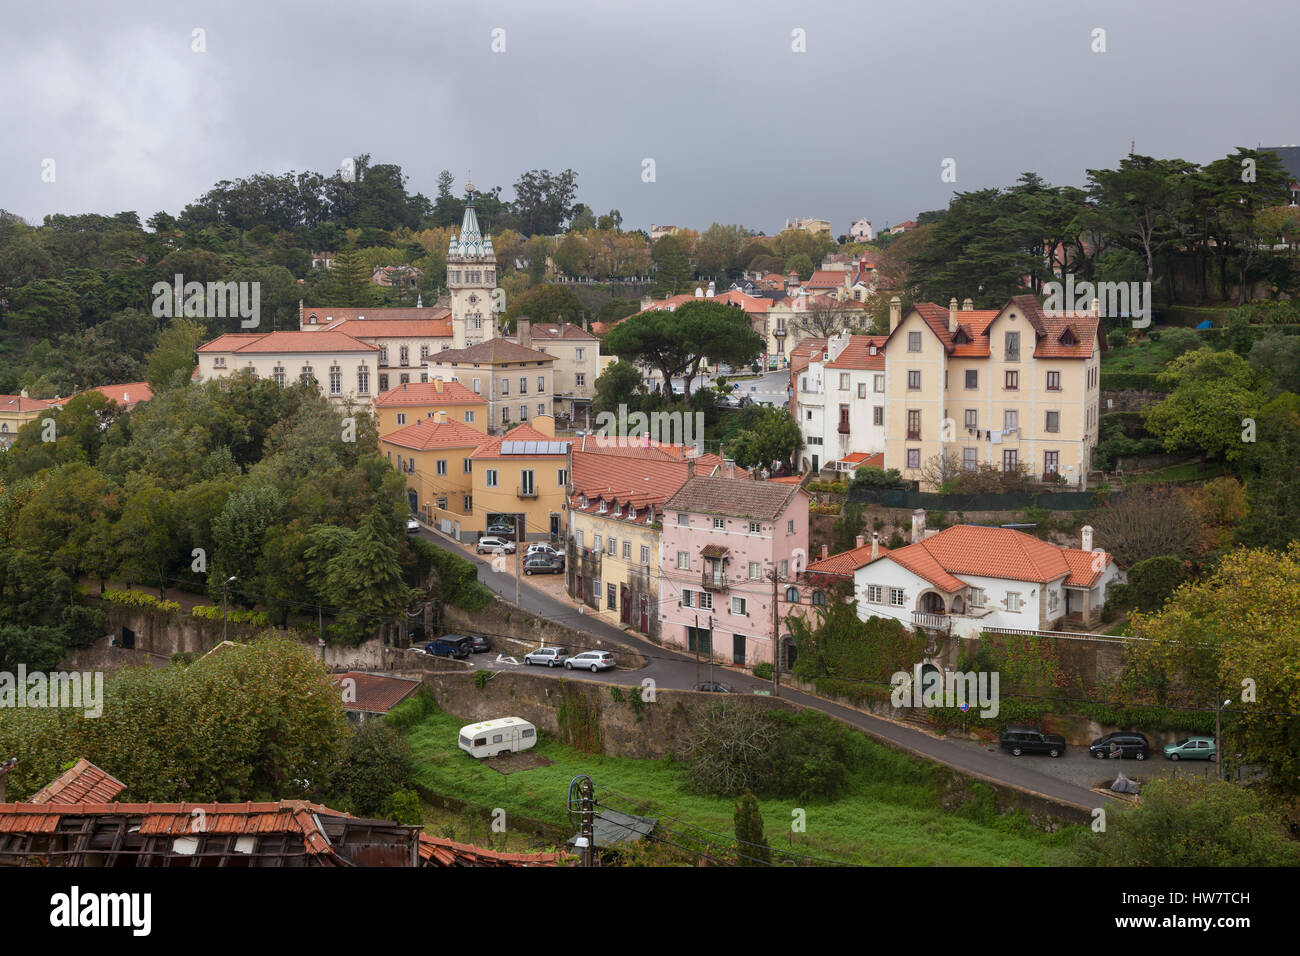 Sintra, Portugal: Elevated view of town center with the Câmara Municipal Sintra (Town Council). - Stock Image